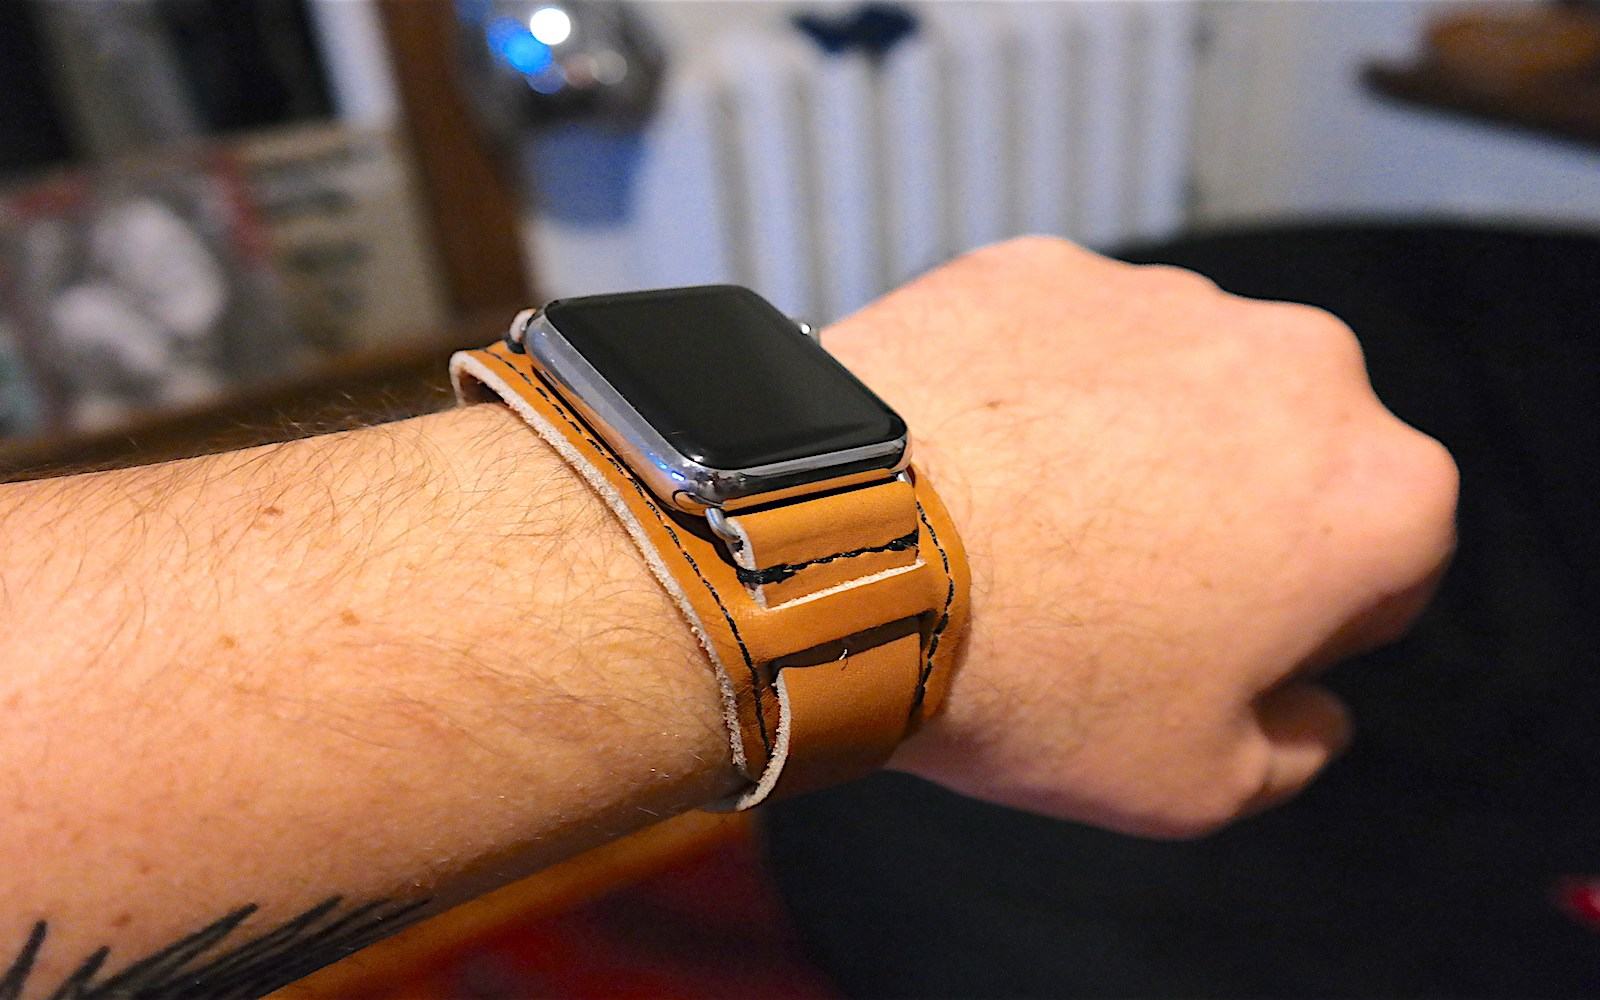 Review: Pad & Quill's new Apple Watch band takes on the Hermès cuff at a fraction of the price